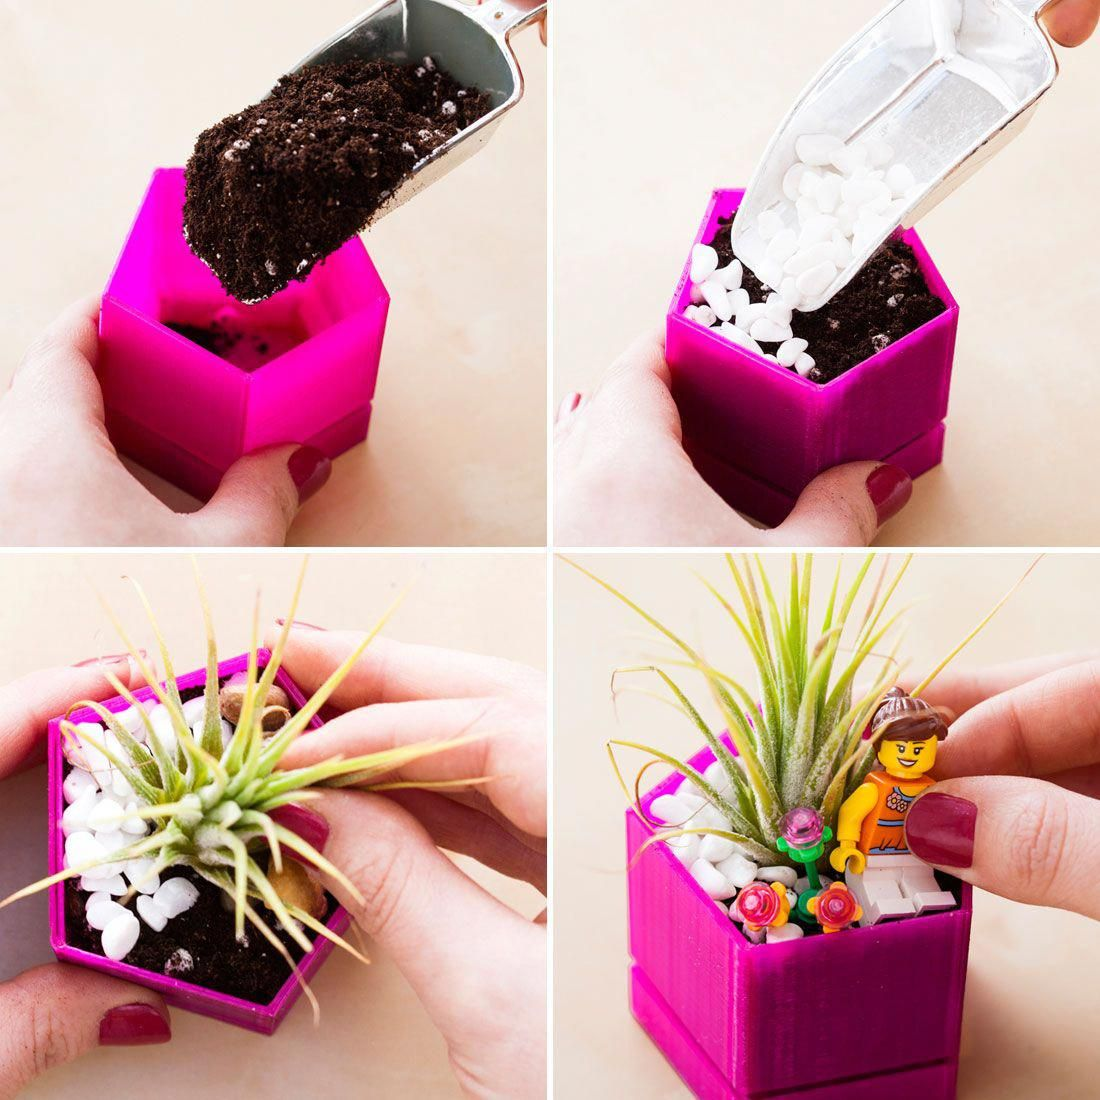 Use Potting Soil Assorted Pebbles And Air Plants To Make